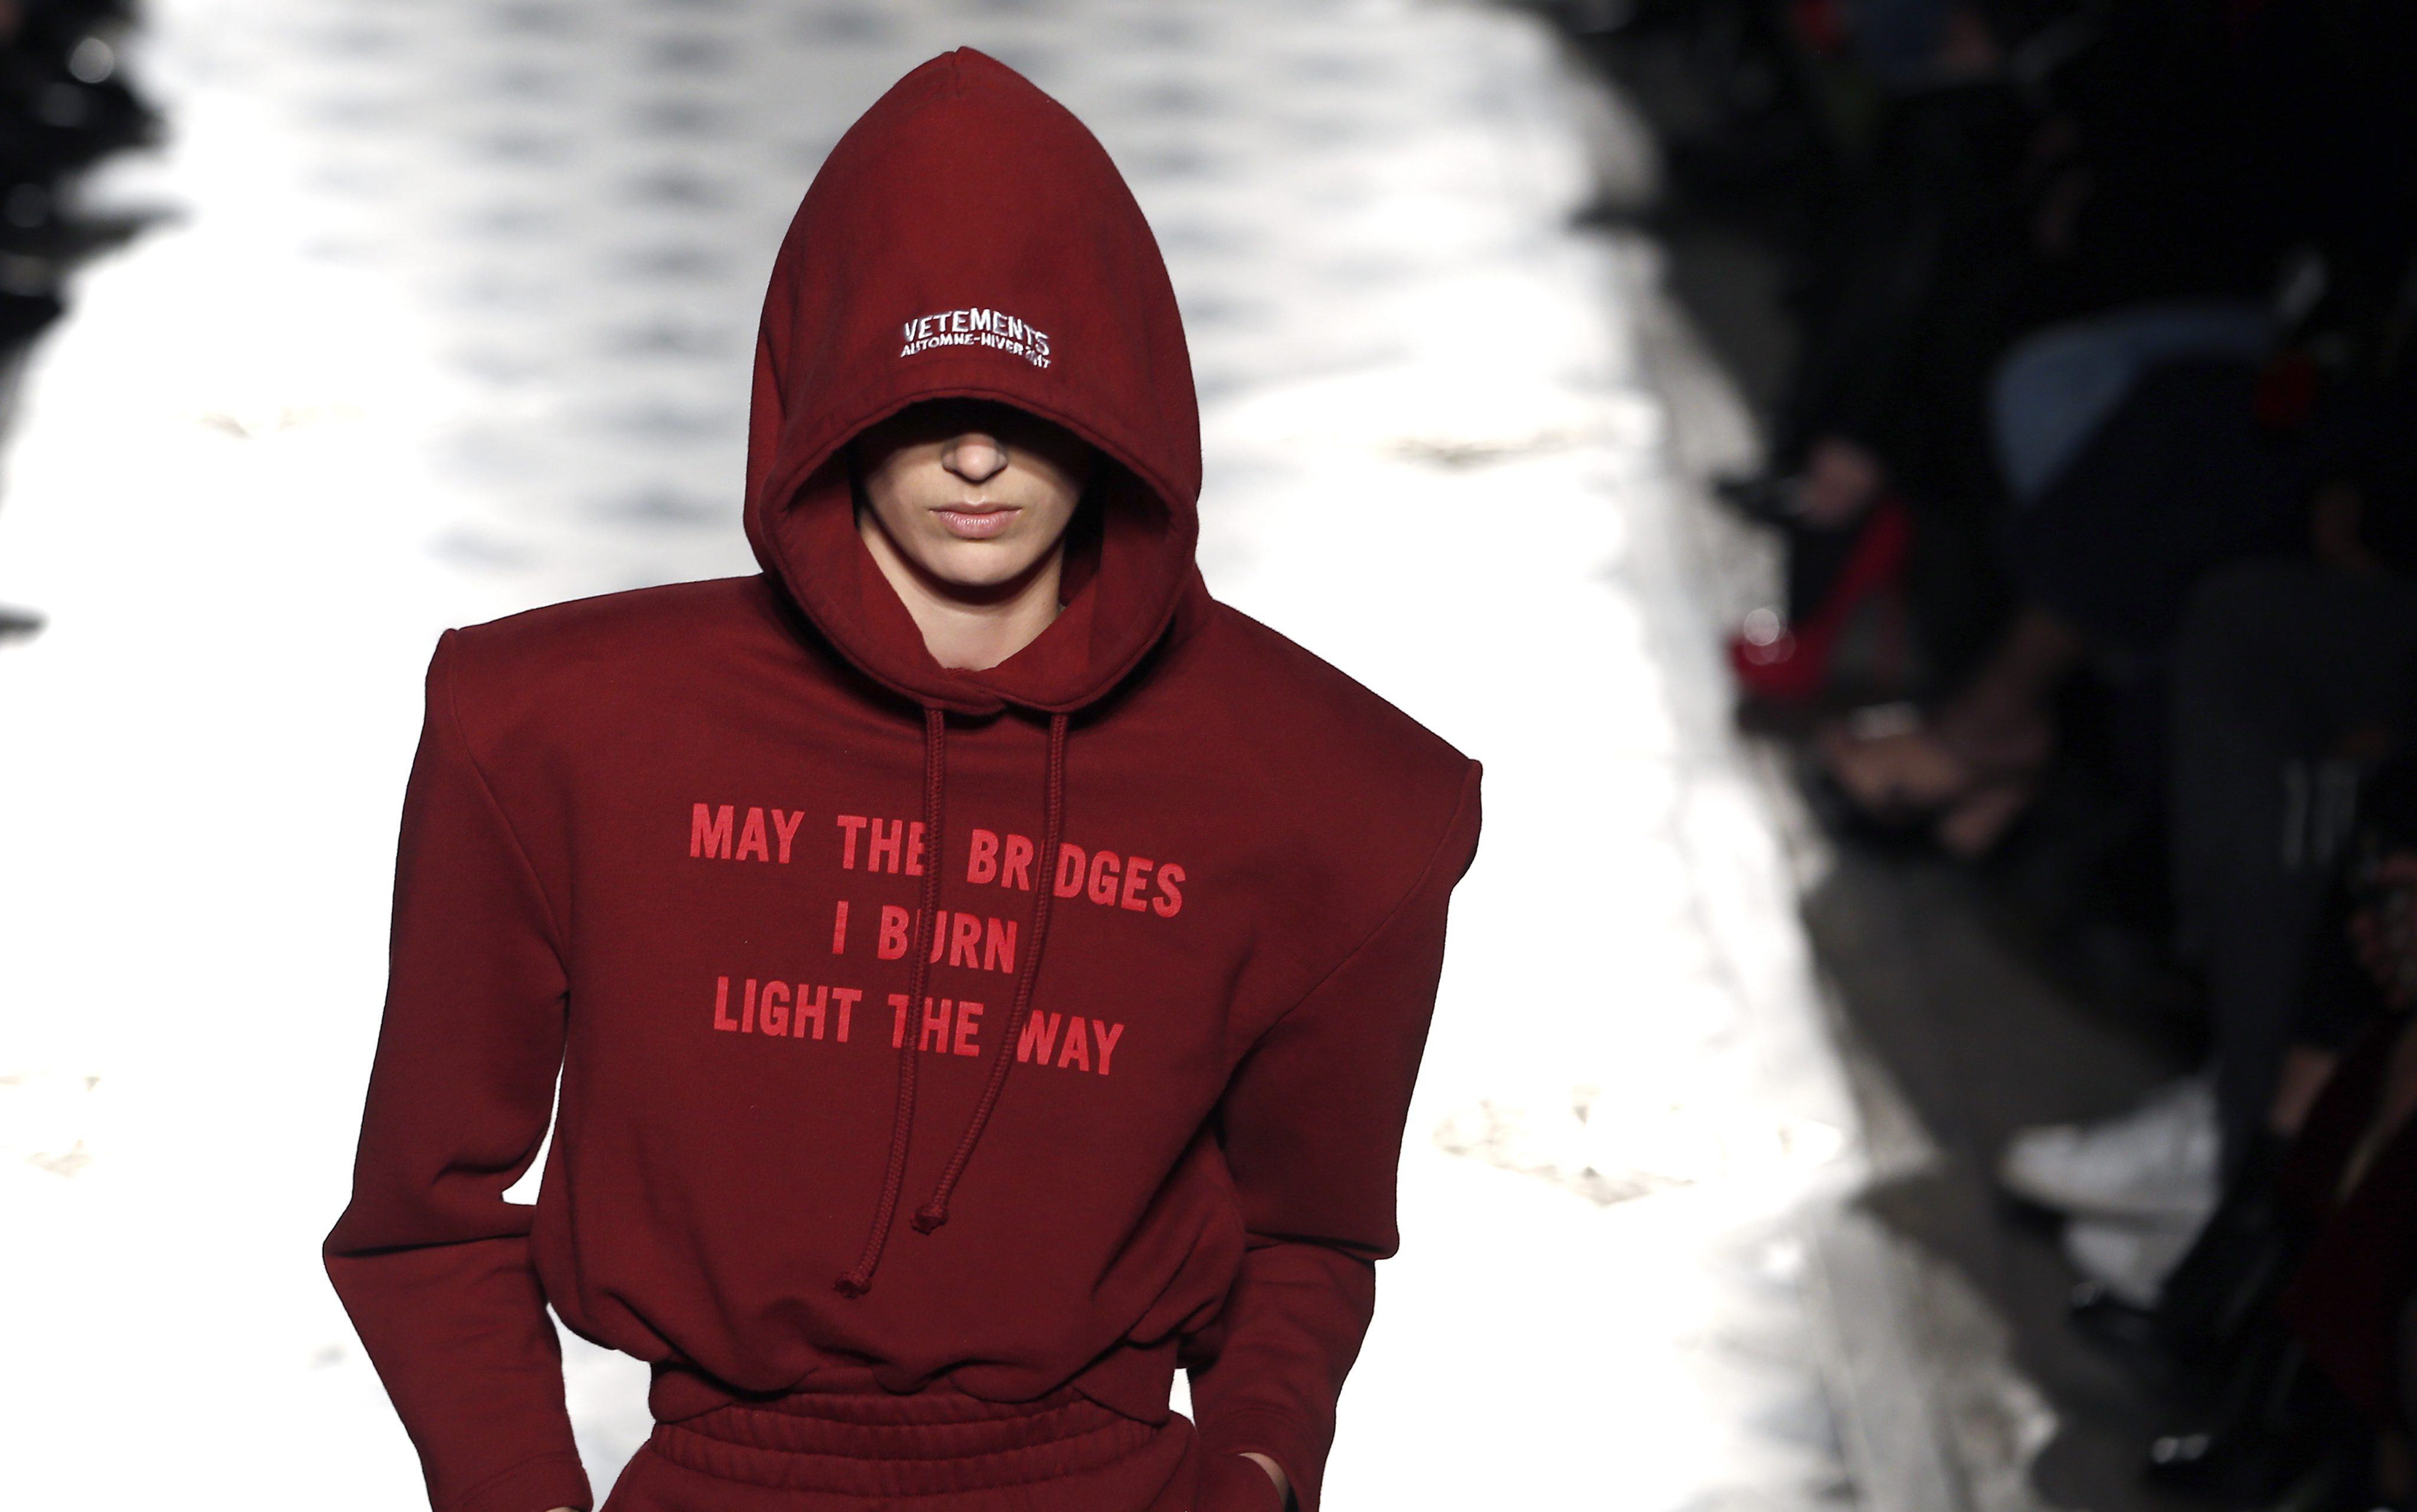 A Model Presents a Creation From the Fall/winter 2016/17 Ready to Wear Collection by Vetements Fashion House During the Paris Fashion Week in Paris France 03 March 2016 the Presentation of the Women's Collections Runs From 01 March to 09 March France ParisFrance Paris Fashion Week - Mar 2016